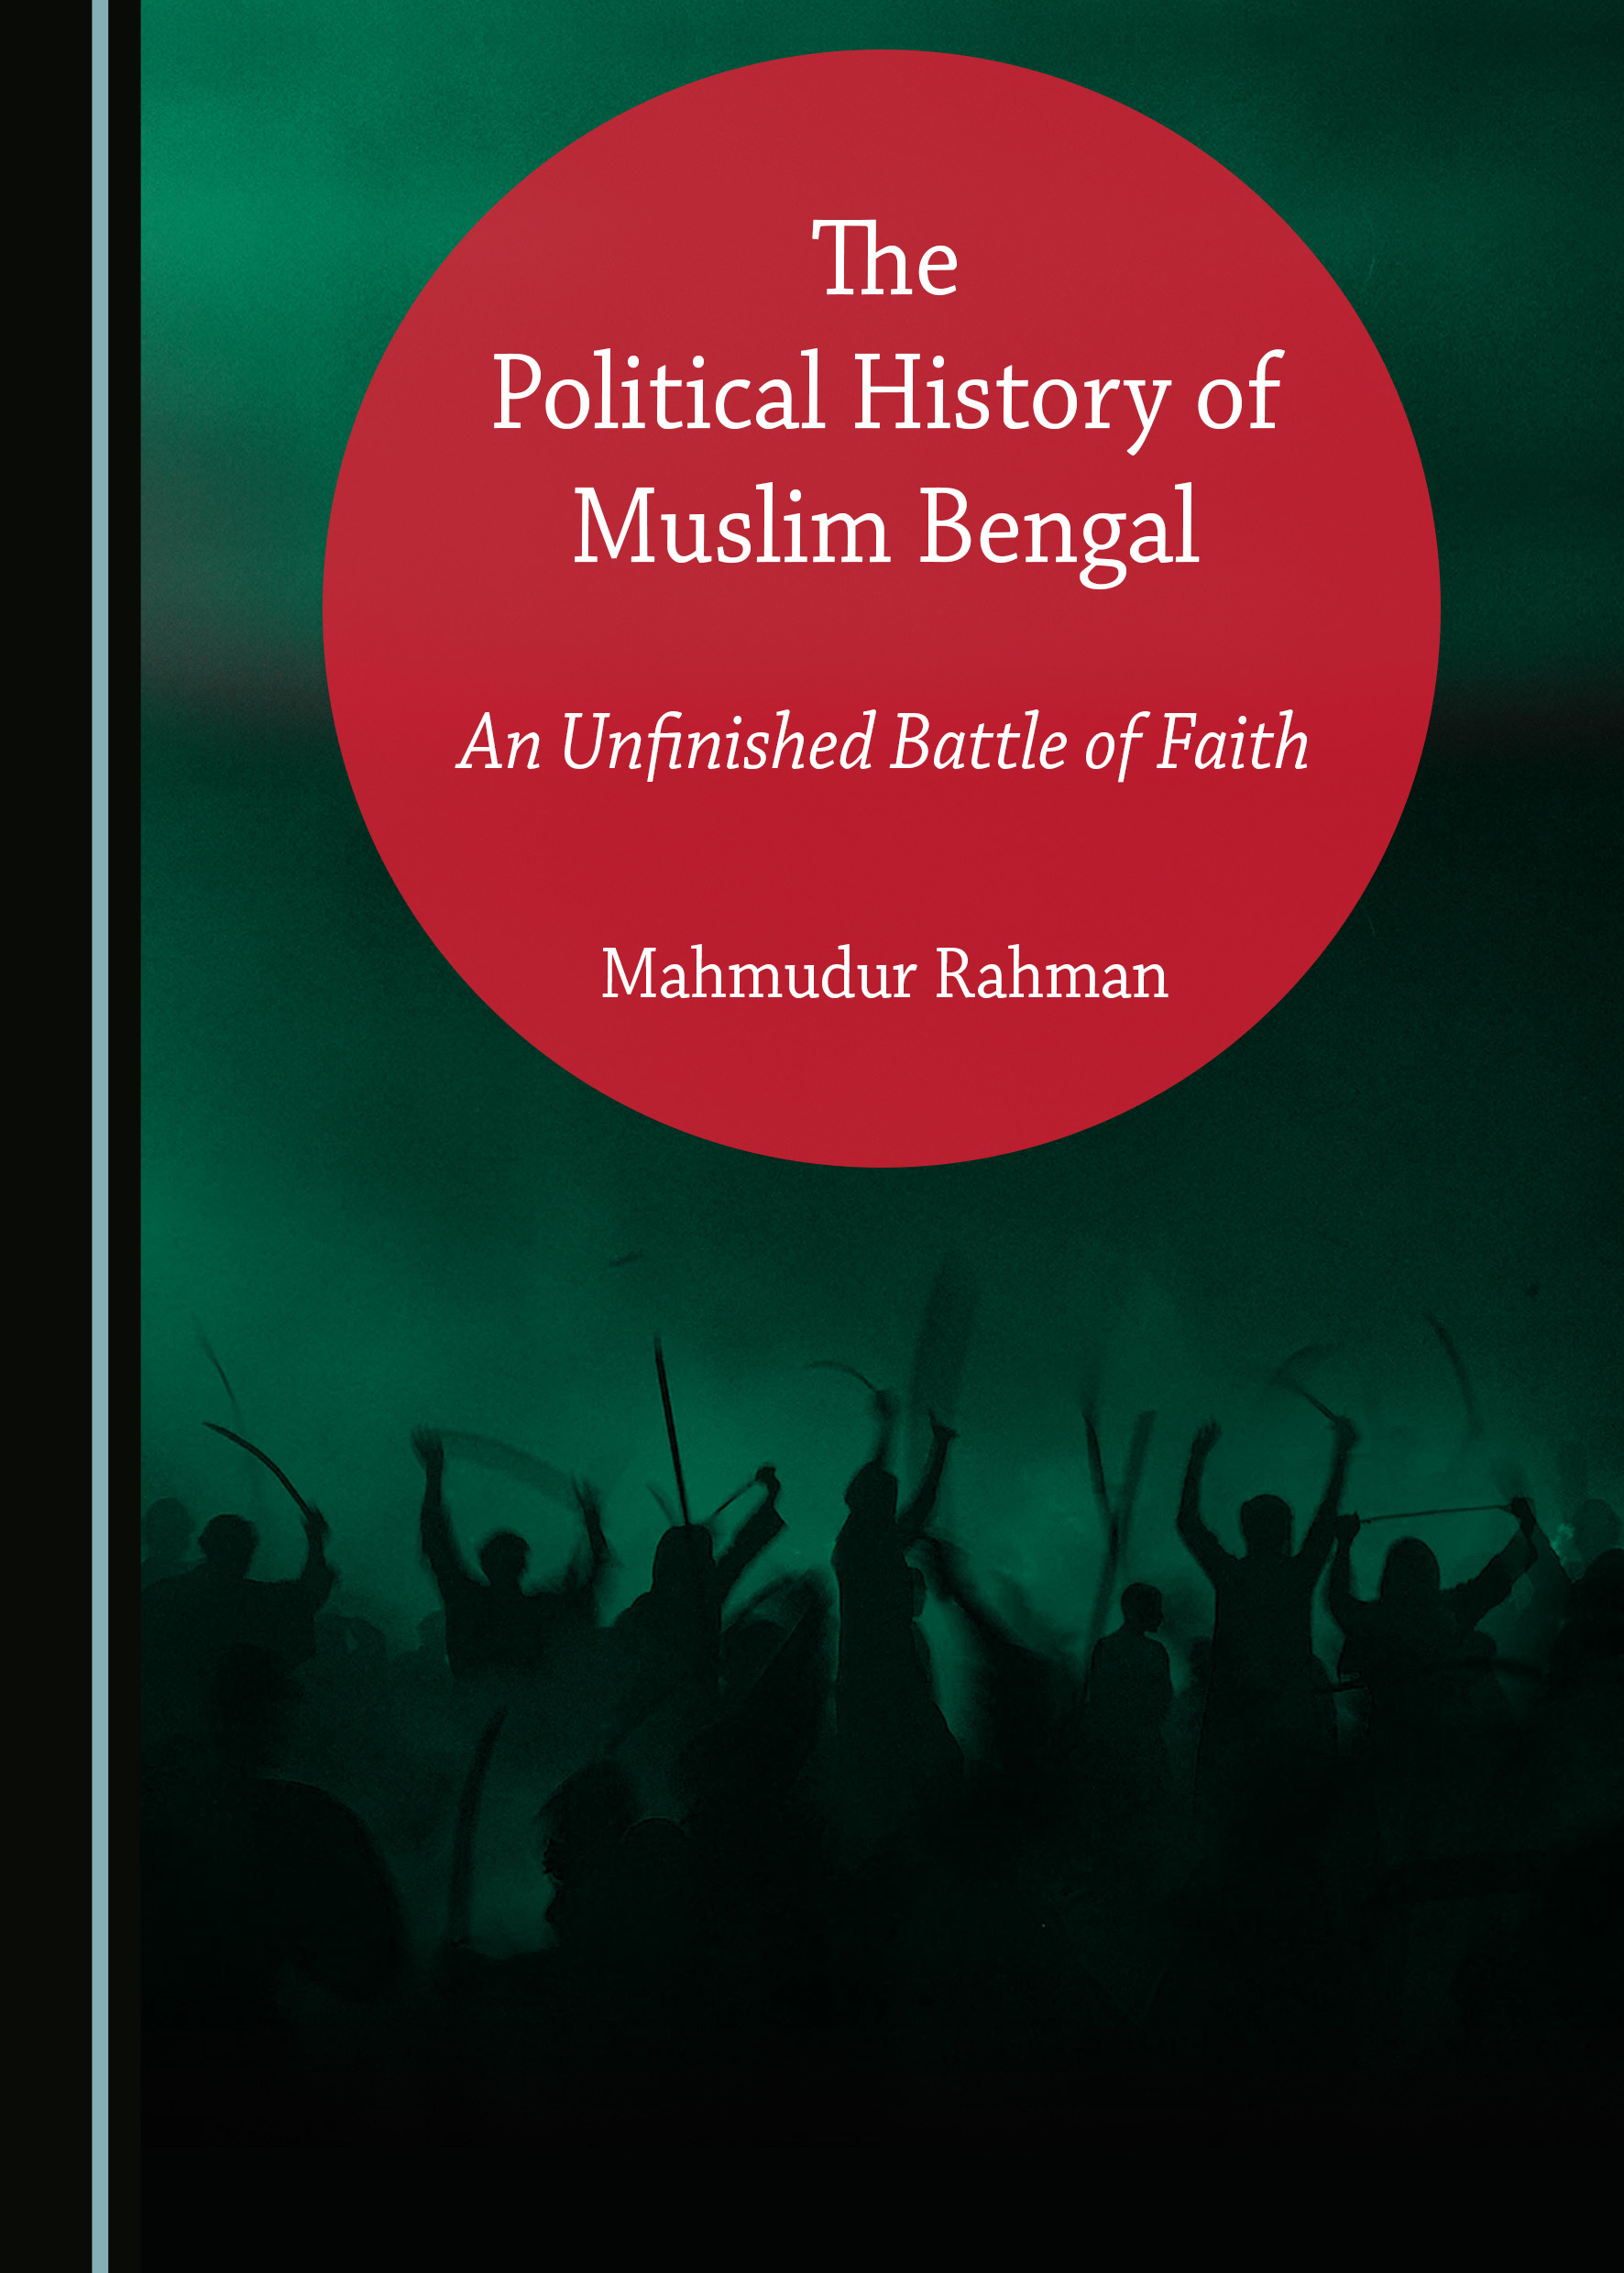 The Political History of Muslim Bengal: An Unfinished Battle of Faith